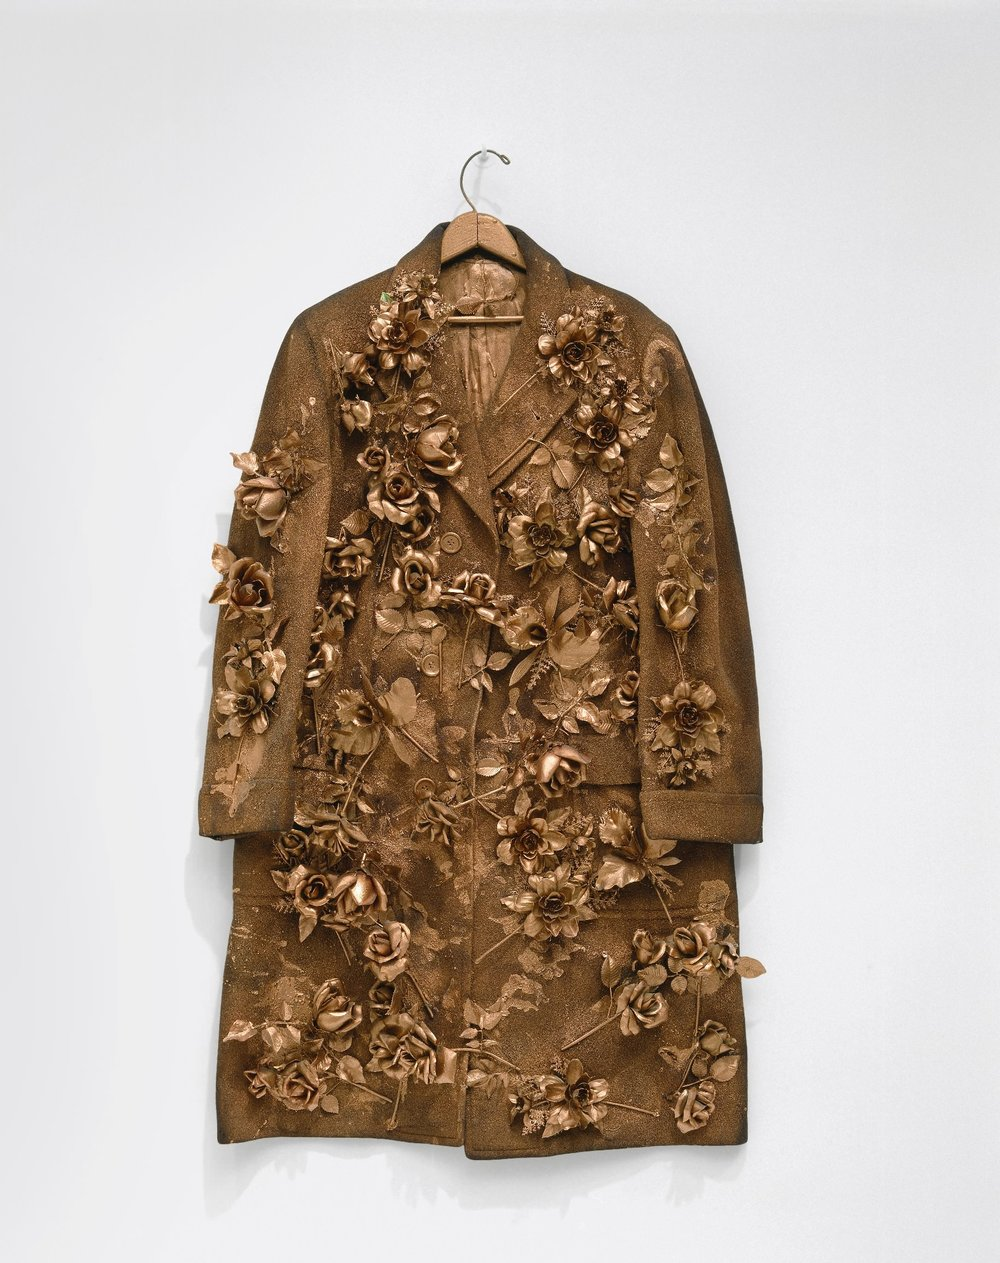 Yayoi Kusama Flower Overcoat, 1964 (Cloth overcoat, plastic flowers, metallic paint, and wood hanger) Hirshhorn Museum and Sculpture Garden, Washington, DC. Joseph H. Hirshhorn Bequest and Purchase Funds, 1998 (98.38). © Yayoi Kusama Photo credit: Lee Stalsworth